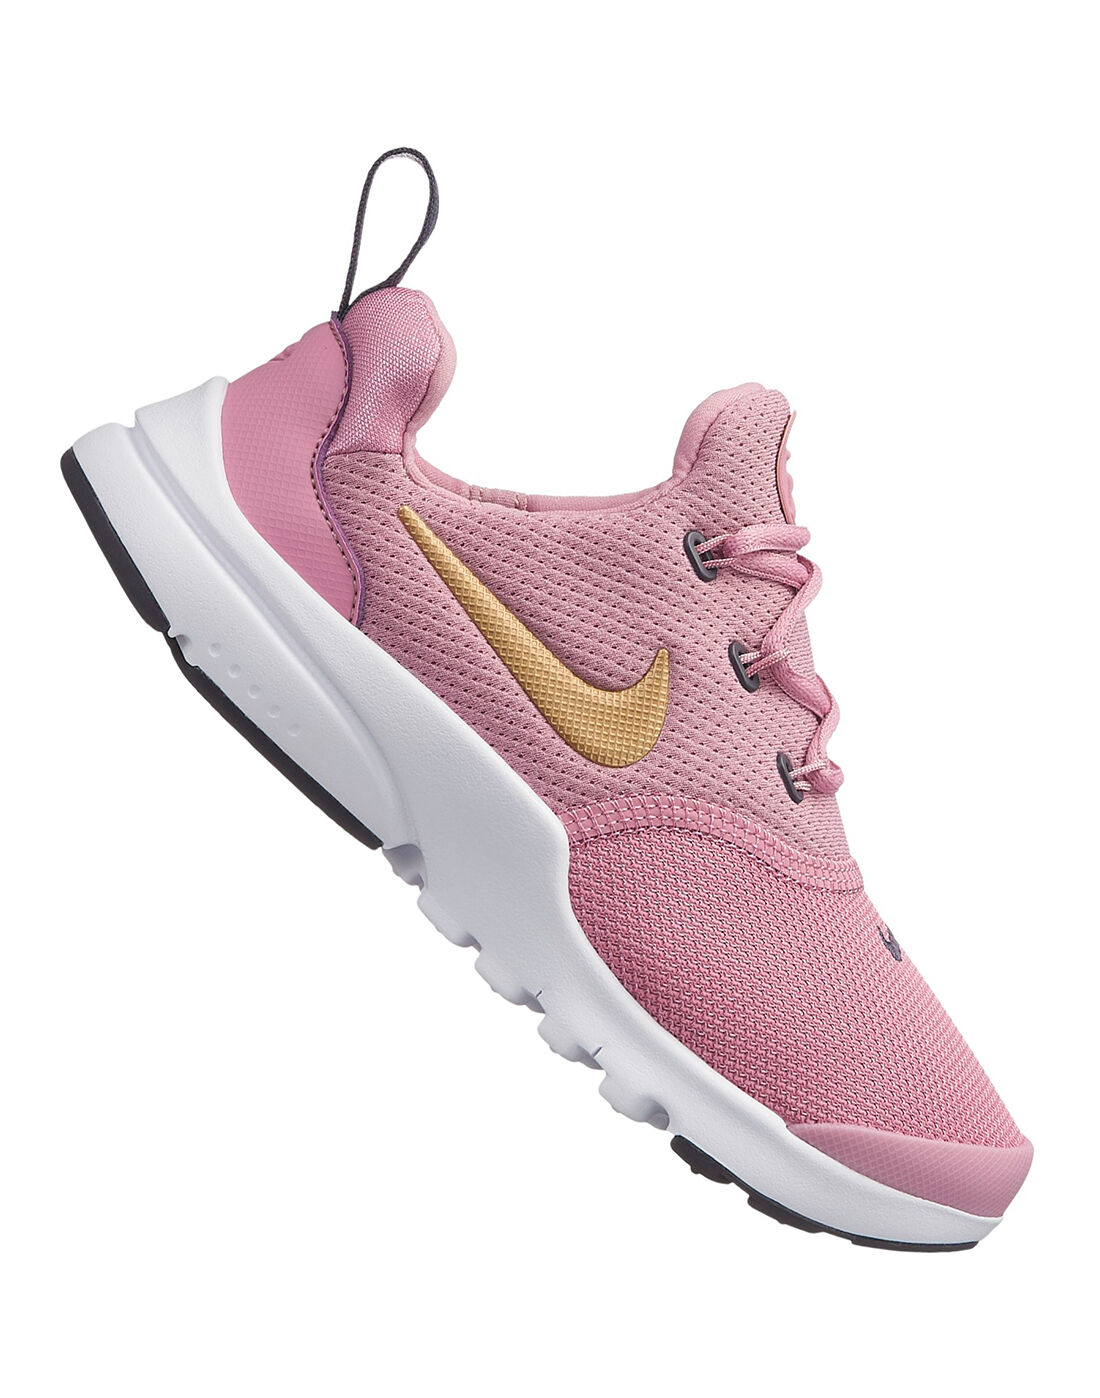 Girls Nike Presto Fly Trainers   Pink